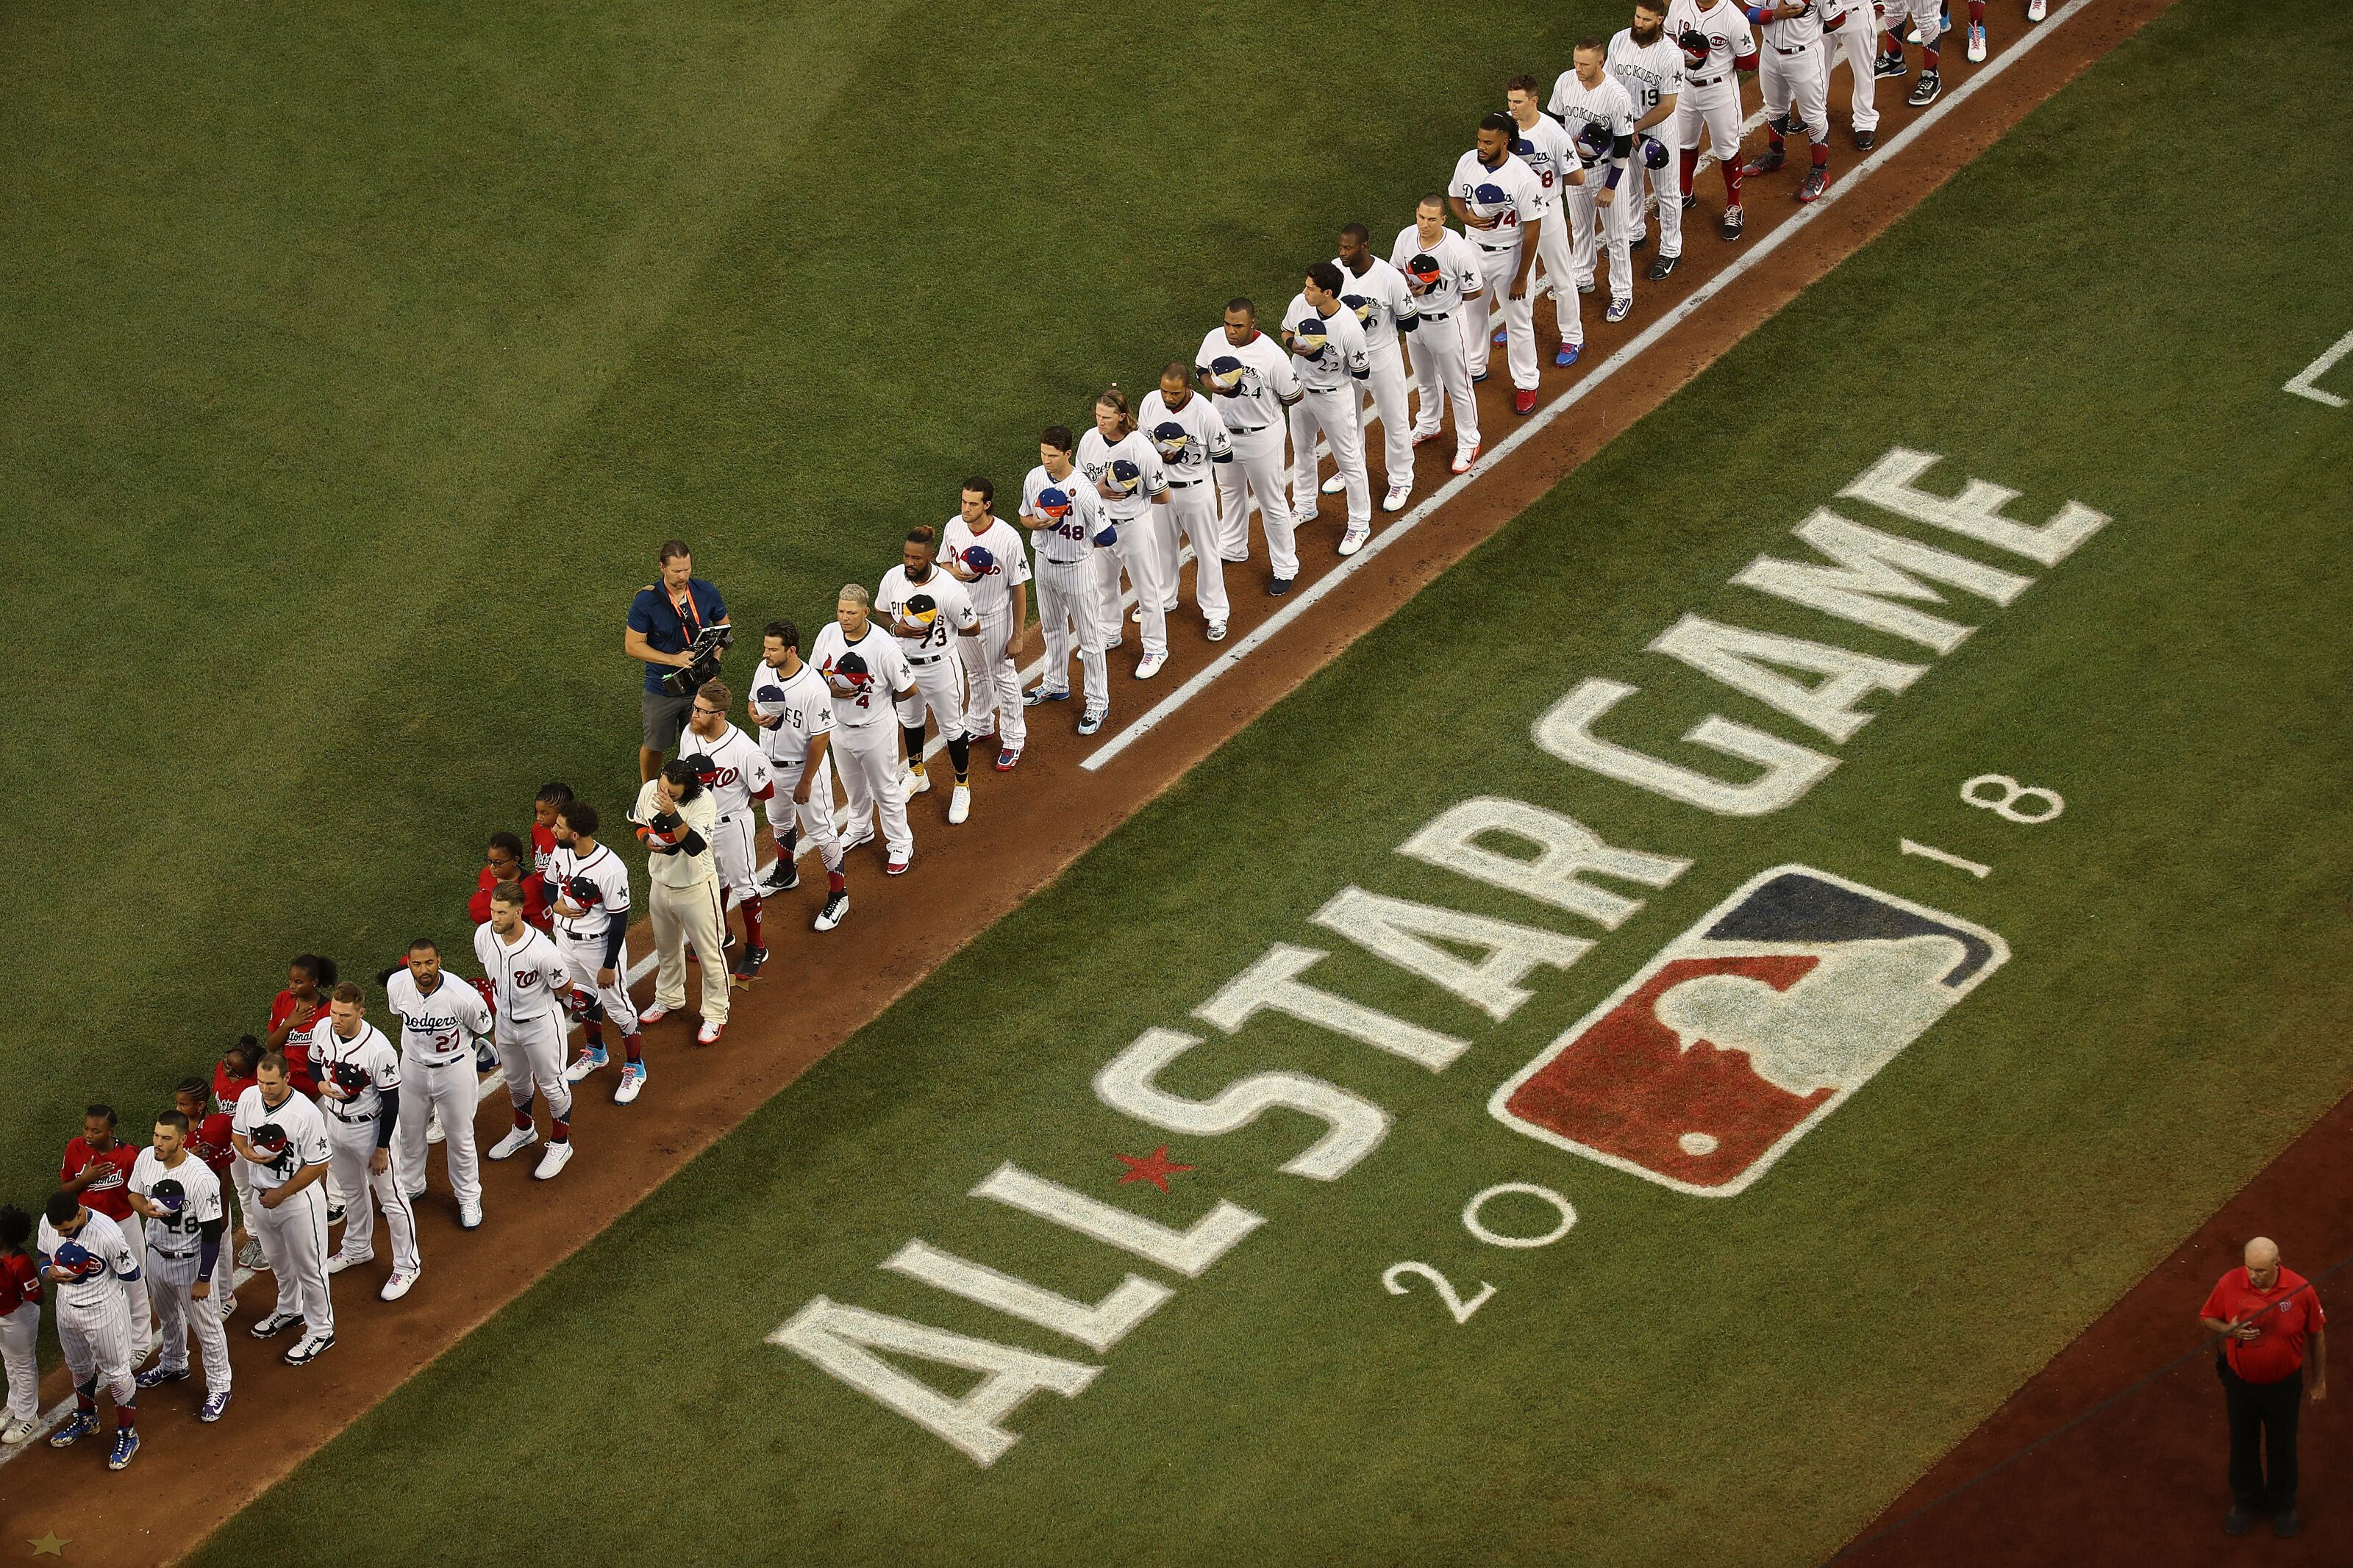 Who should be DH for the NL in the MLB All-Star Game?